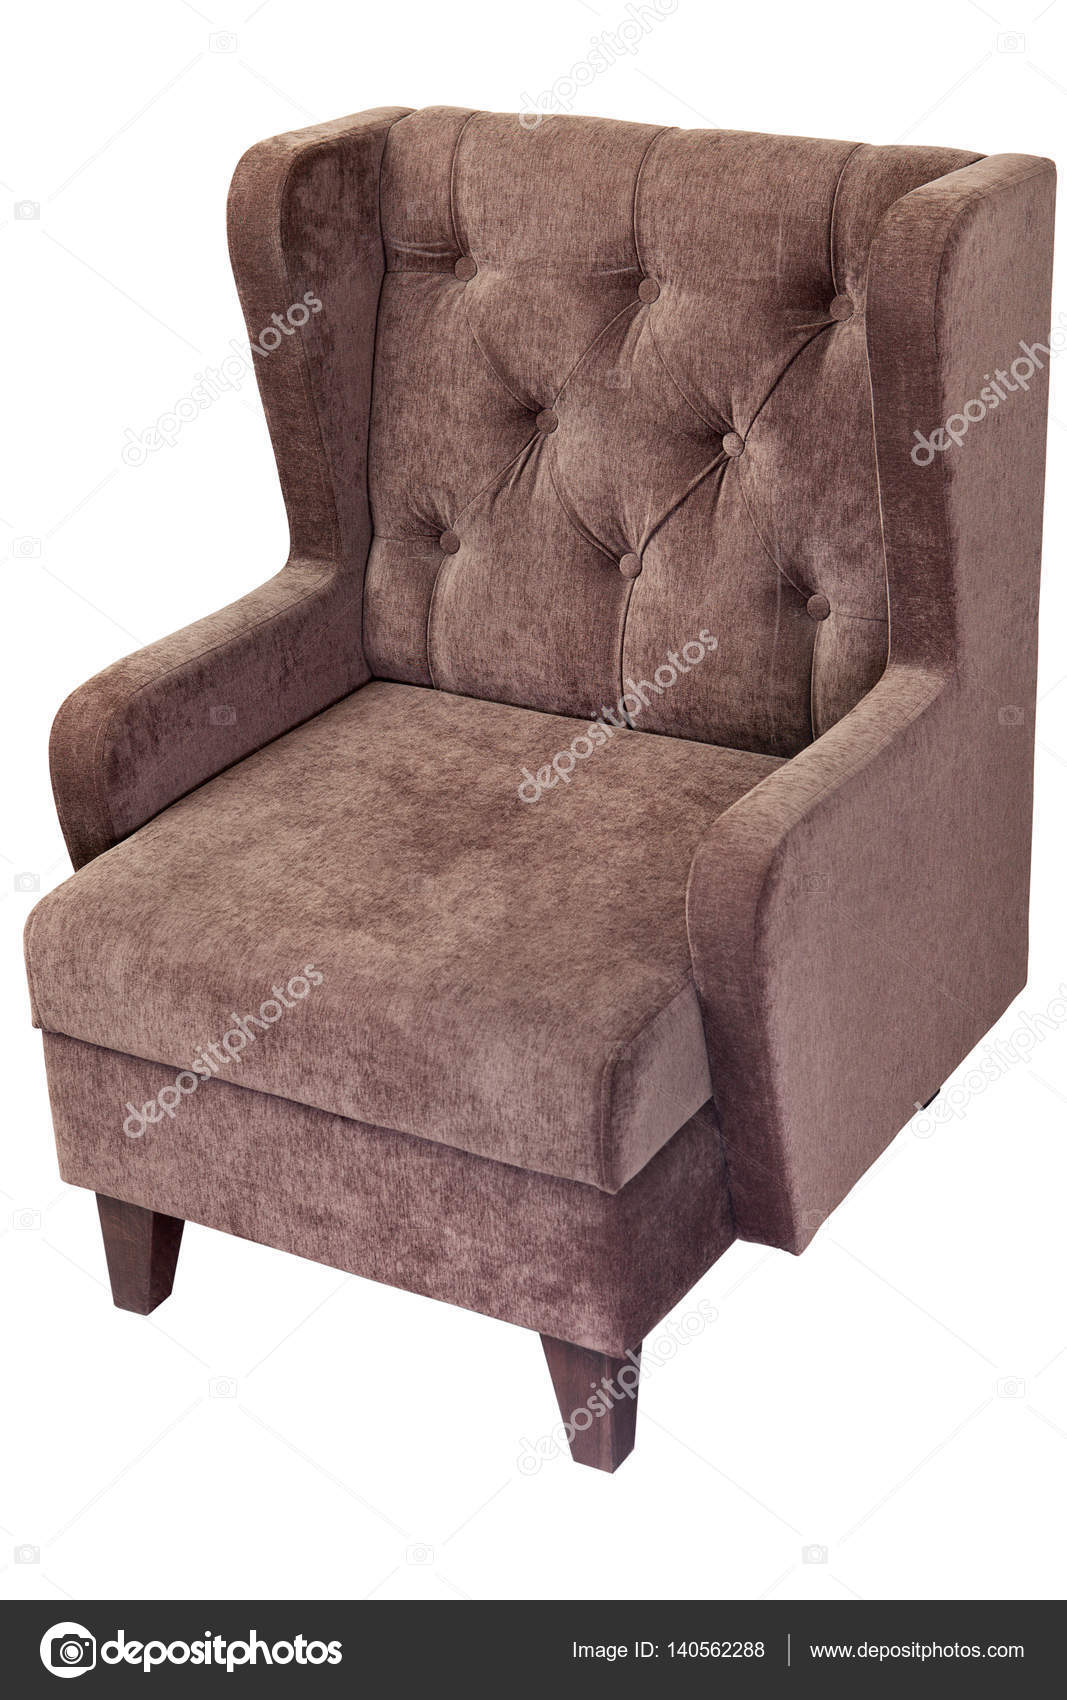 Single Seater Sofa With Light Brown Fabric Upholstered, On White U2014 Stock  Photo